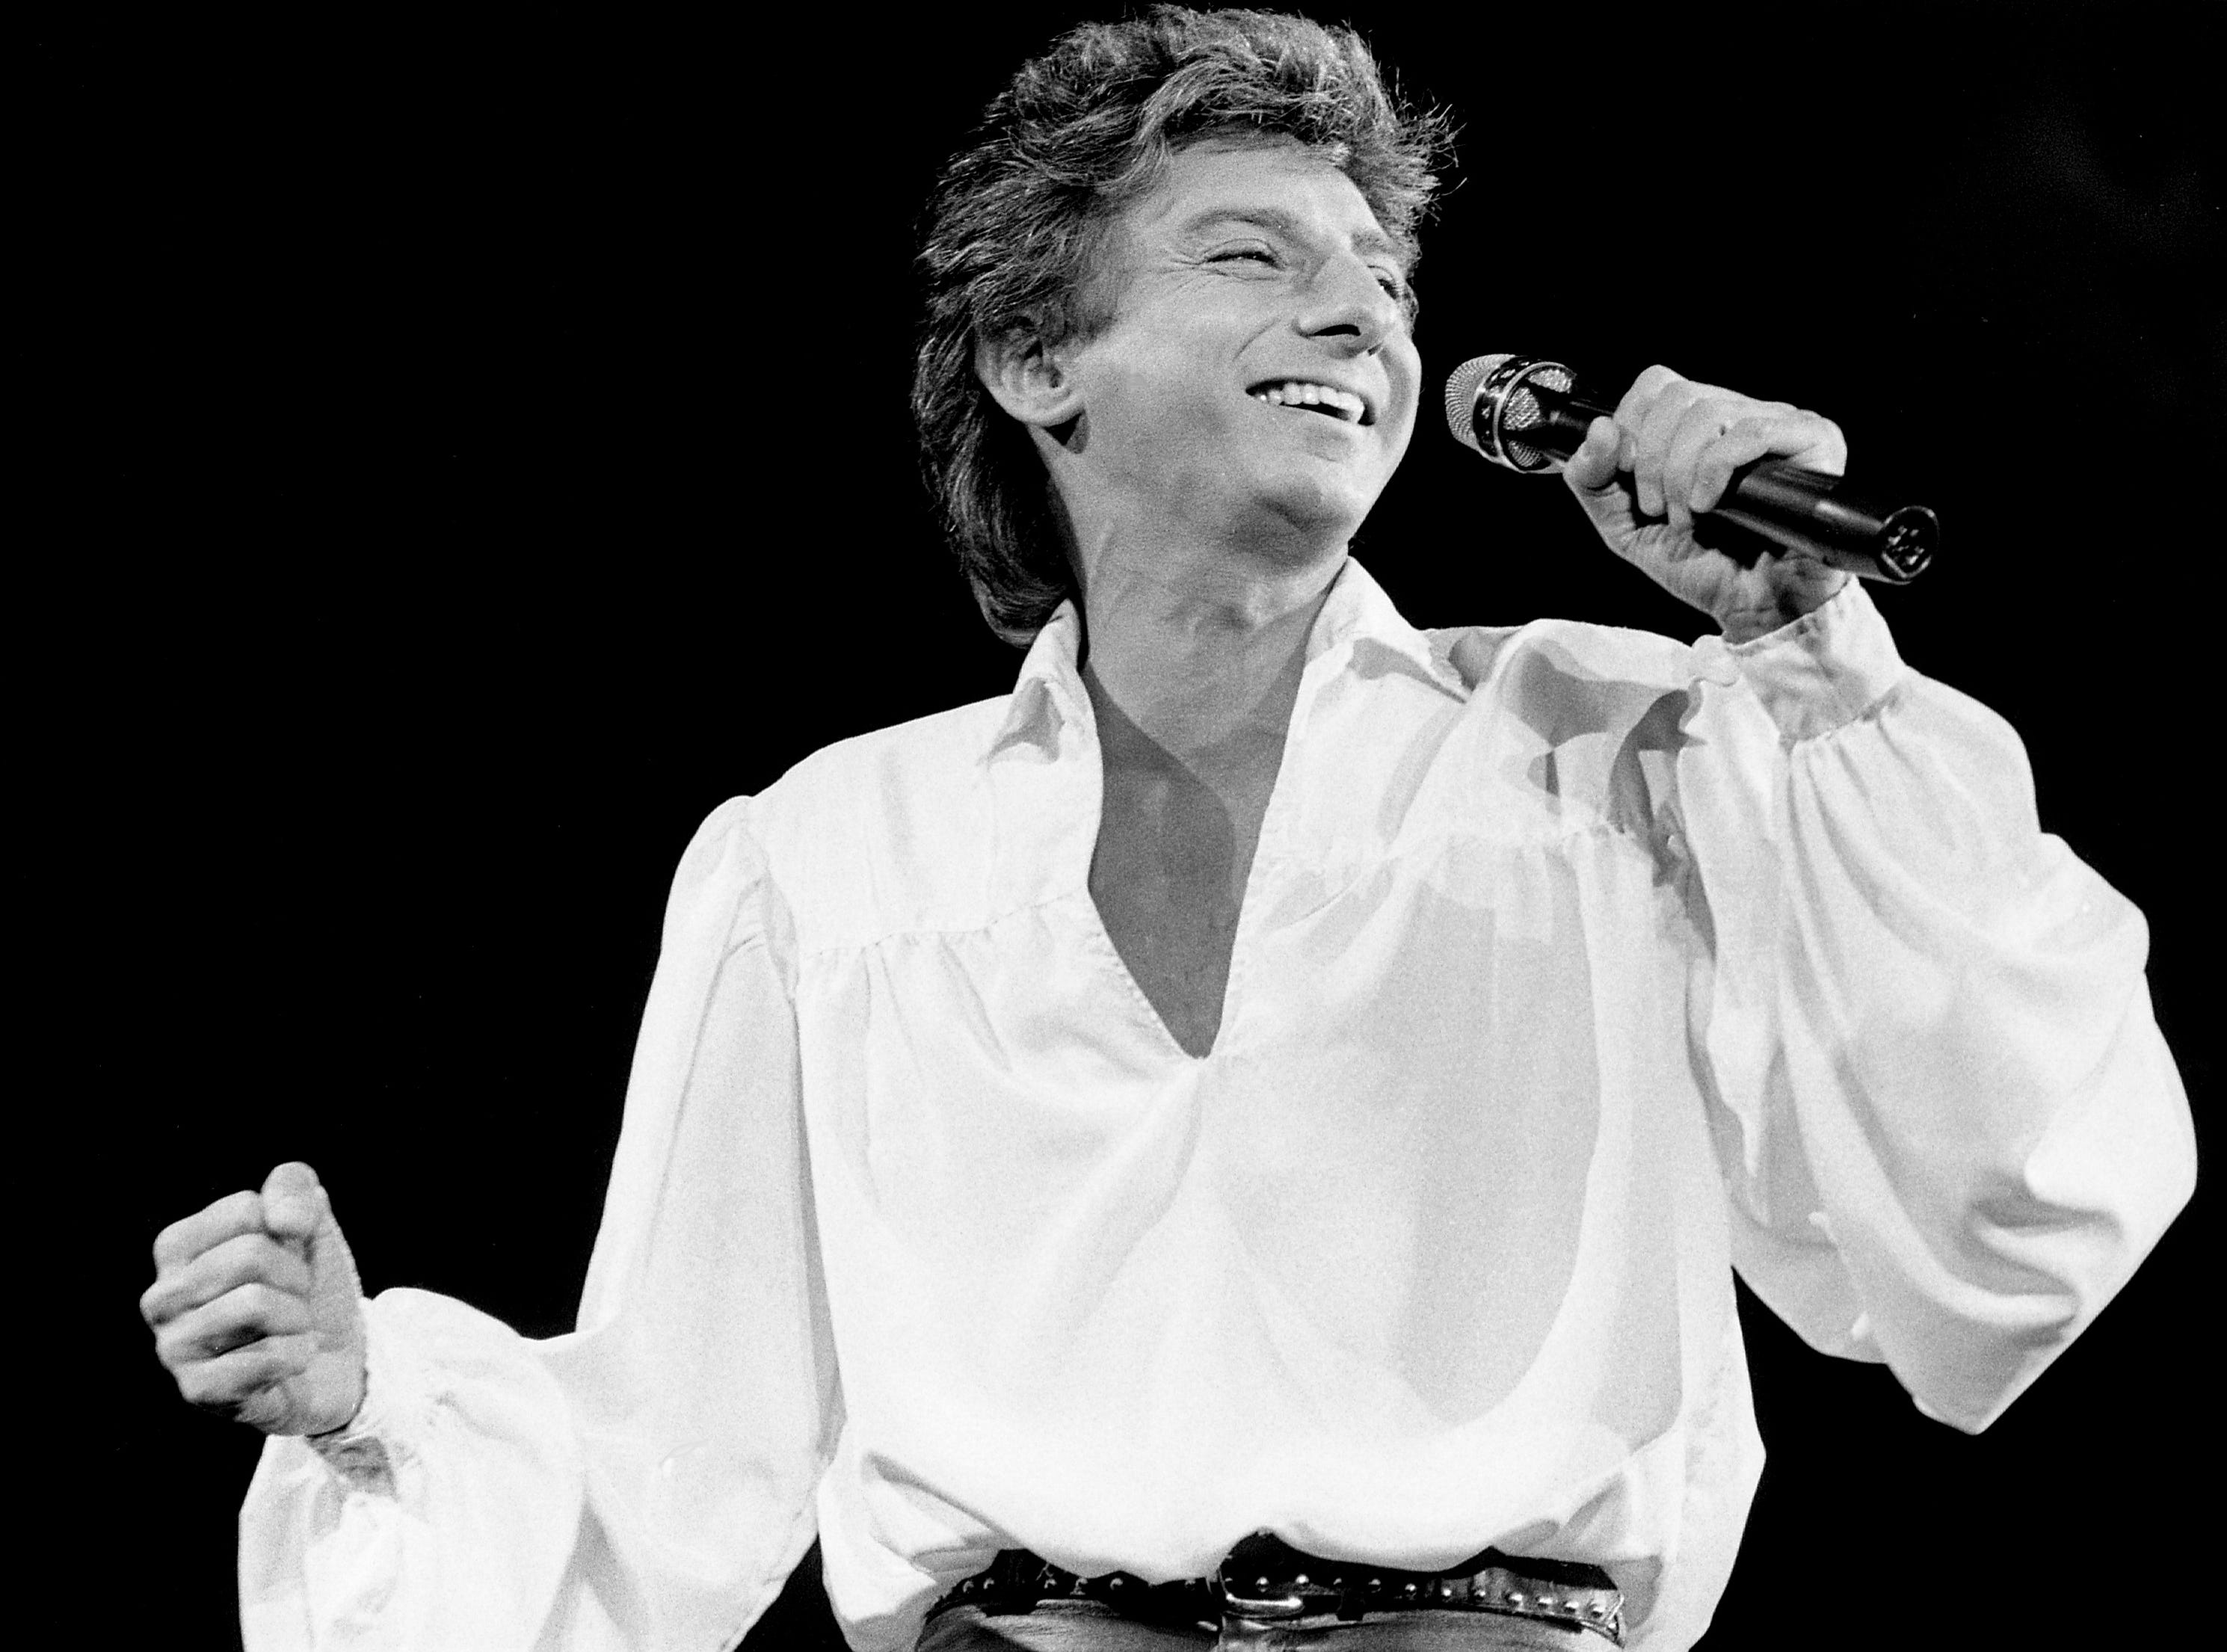 Barry Manilow performs in Nashville on Nov. 14, 1985.